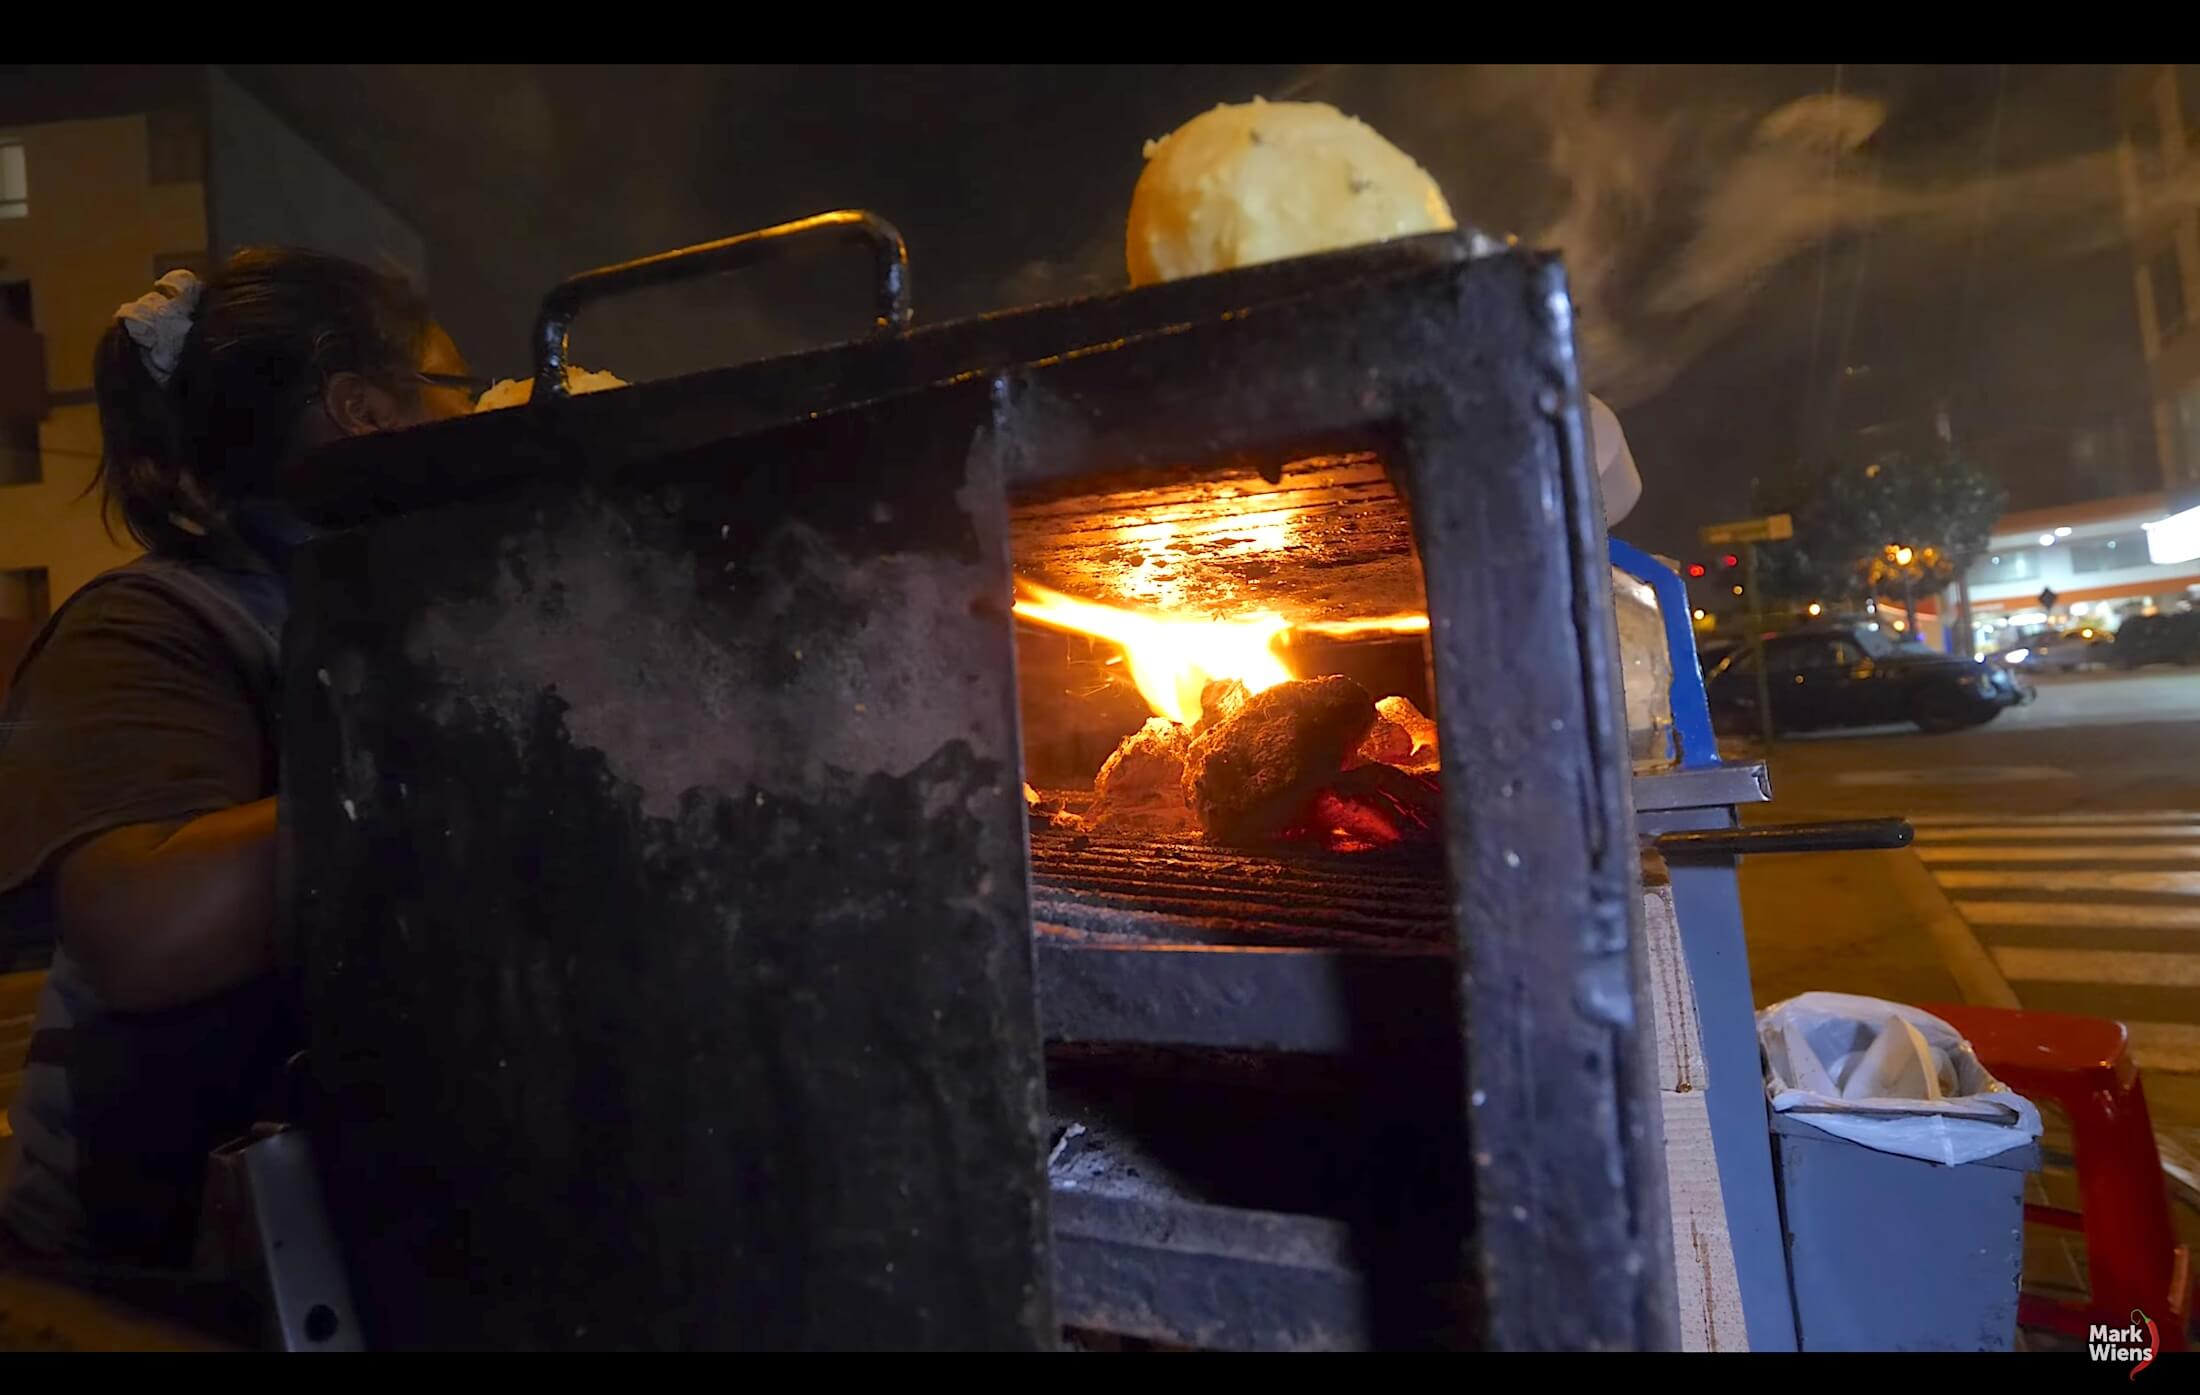 A workman's toolbox grill device, with the inside trays full of fire instead